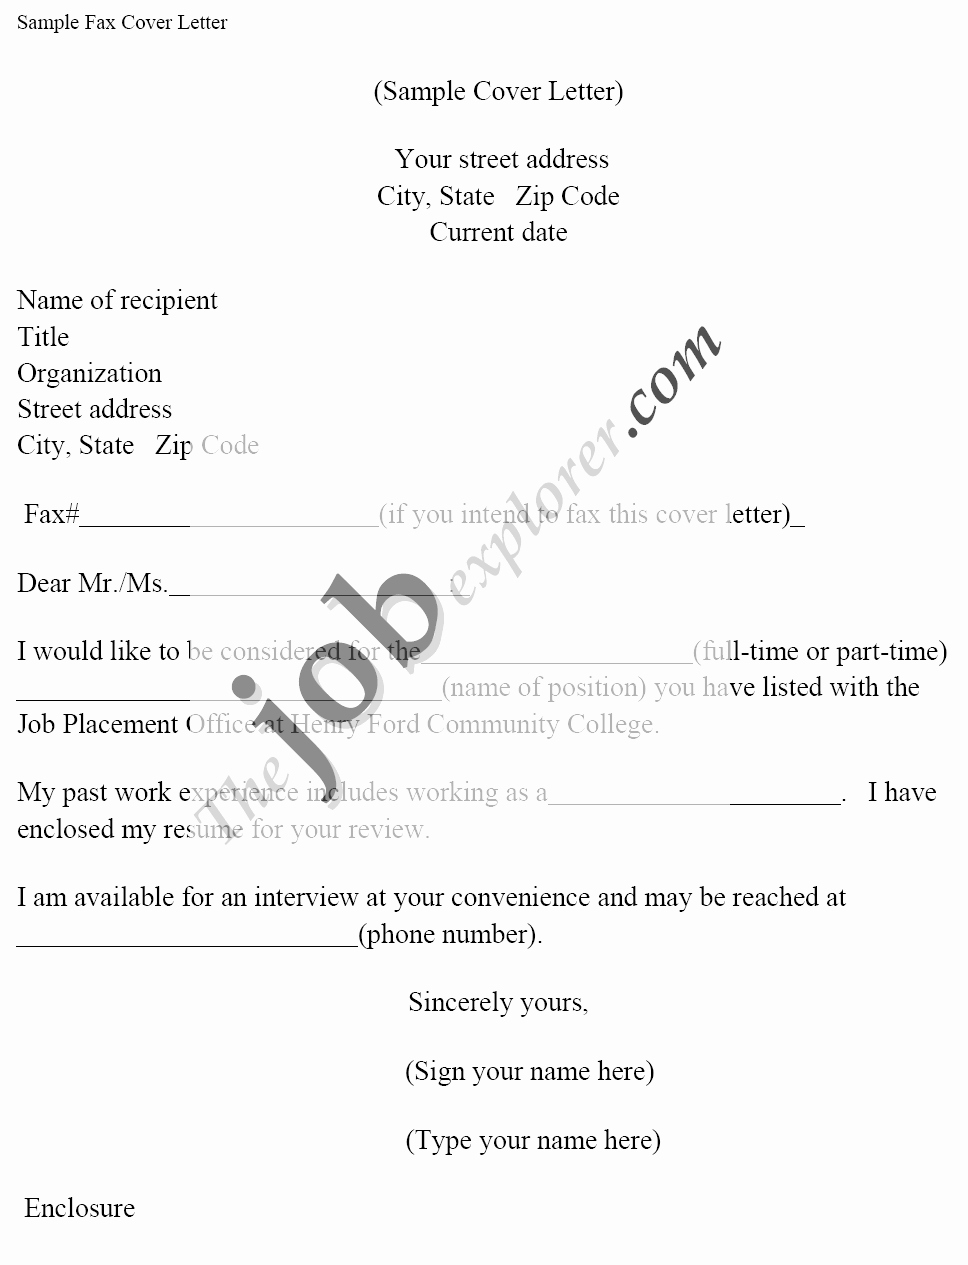 Cover Letter for A Fax Lovely 7 Fax Cover Letter for Job Application